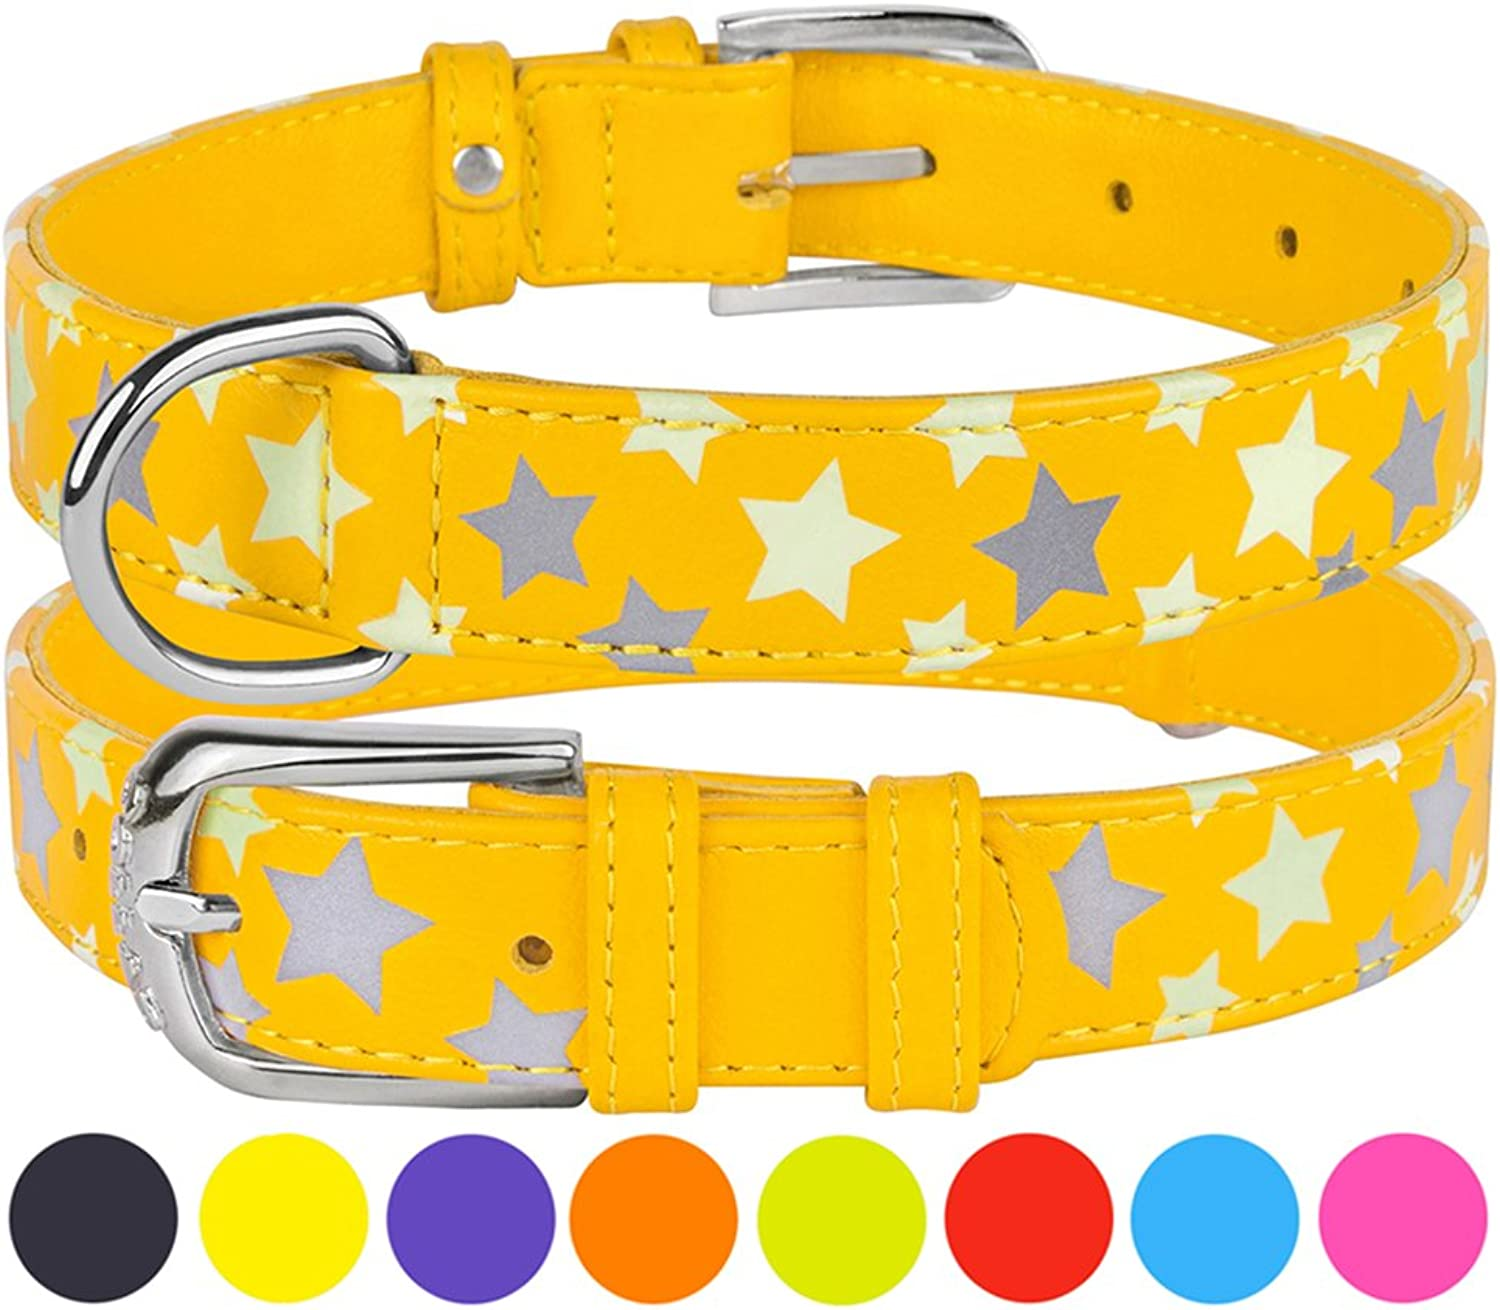 CollarDirect Reflective Dog Collar 8 colors, Leather Safety Collars Dogs Glow in The Dark Puppy Small Medium Large, Comfortable Durable (Neck Fit 9 10 , Yellow)